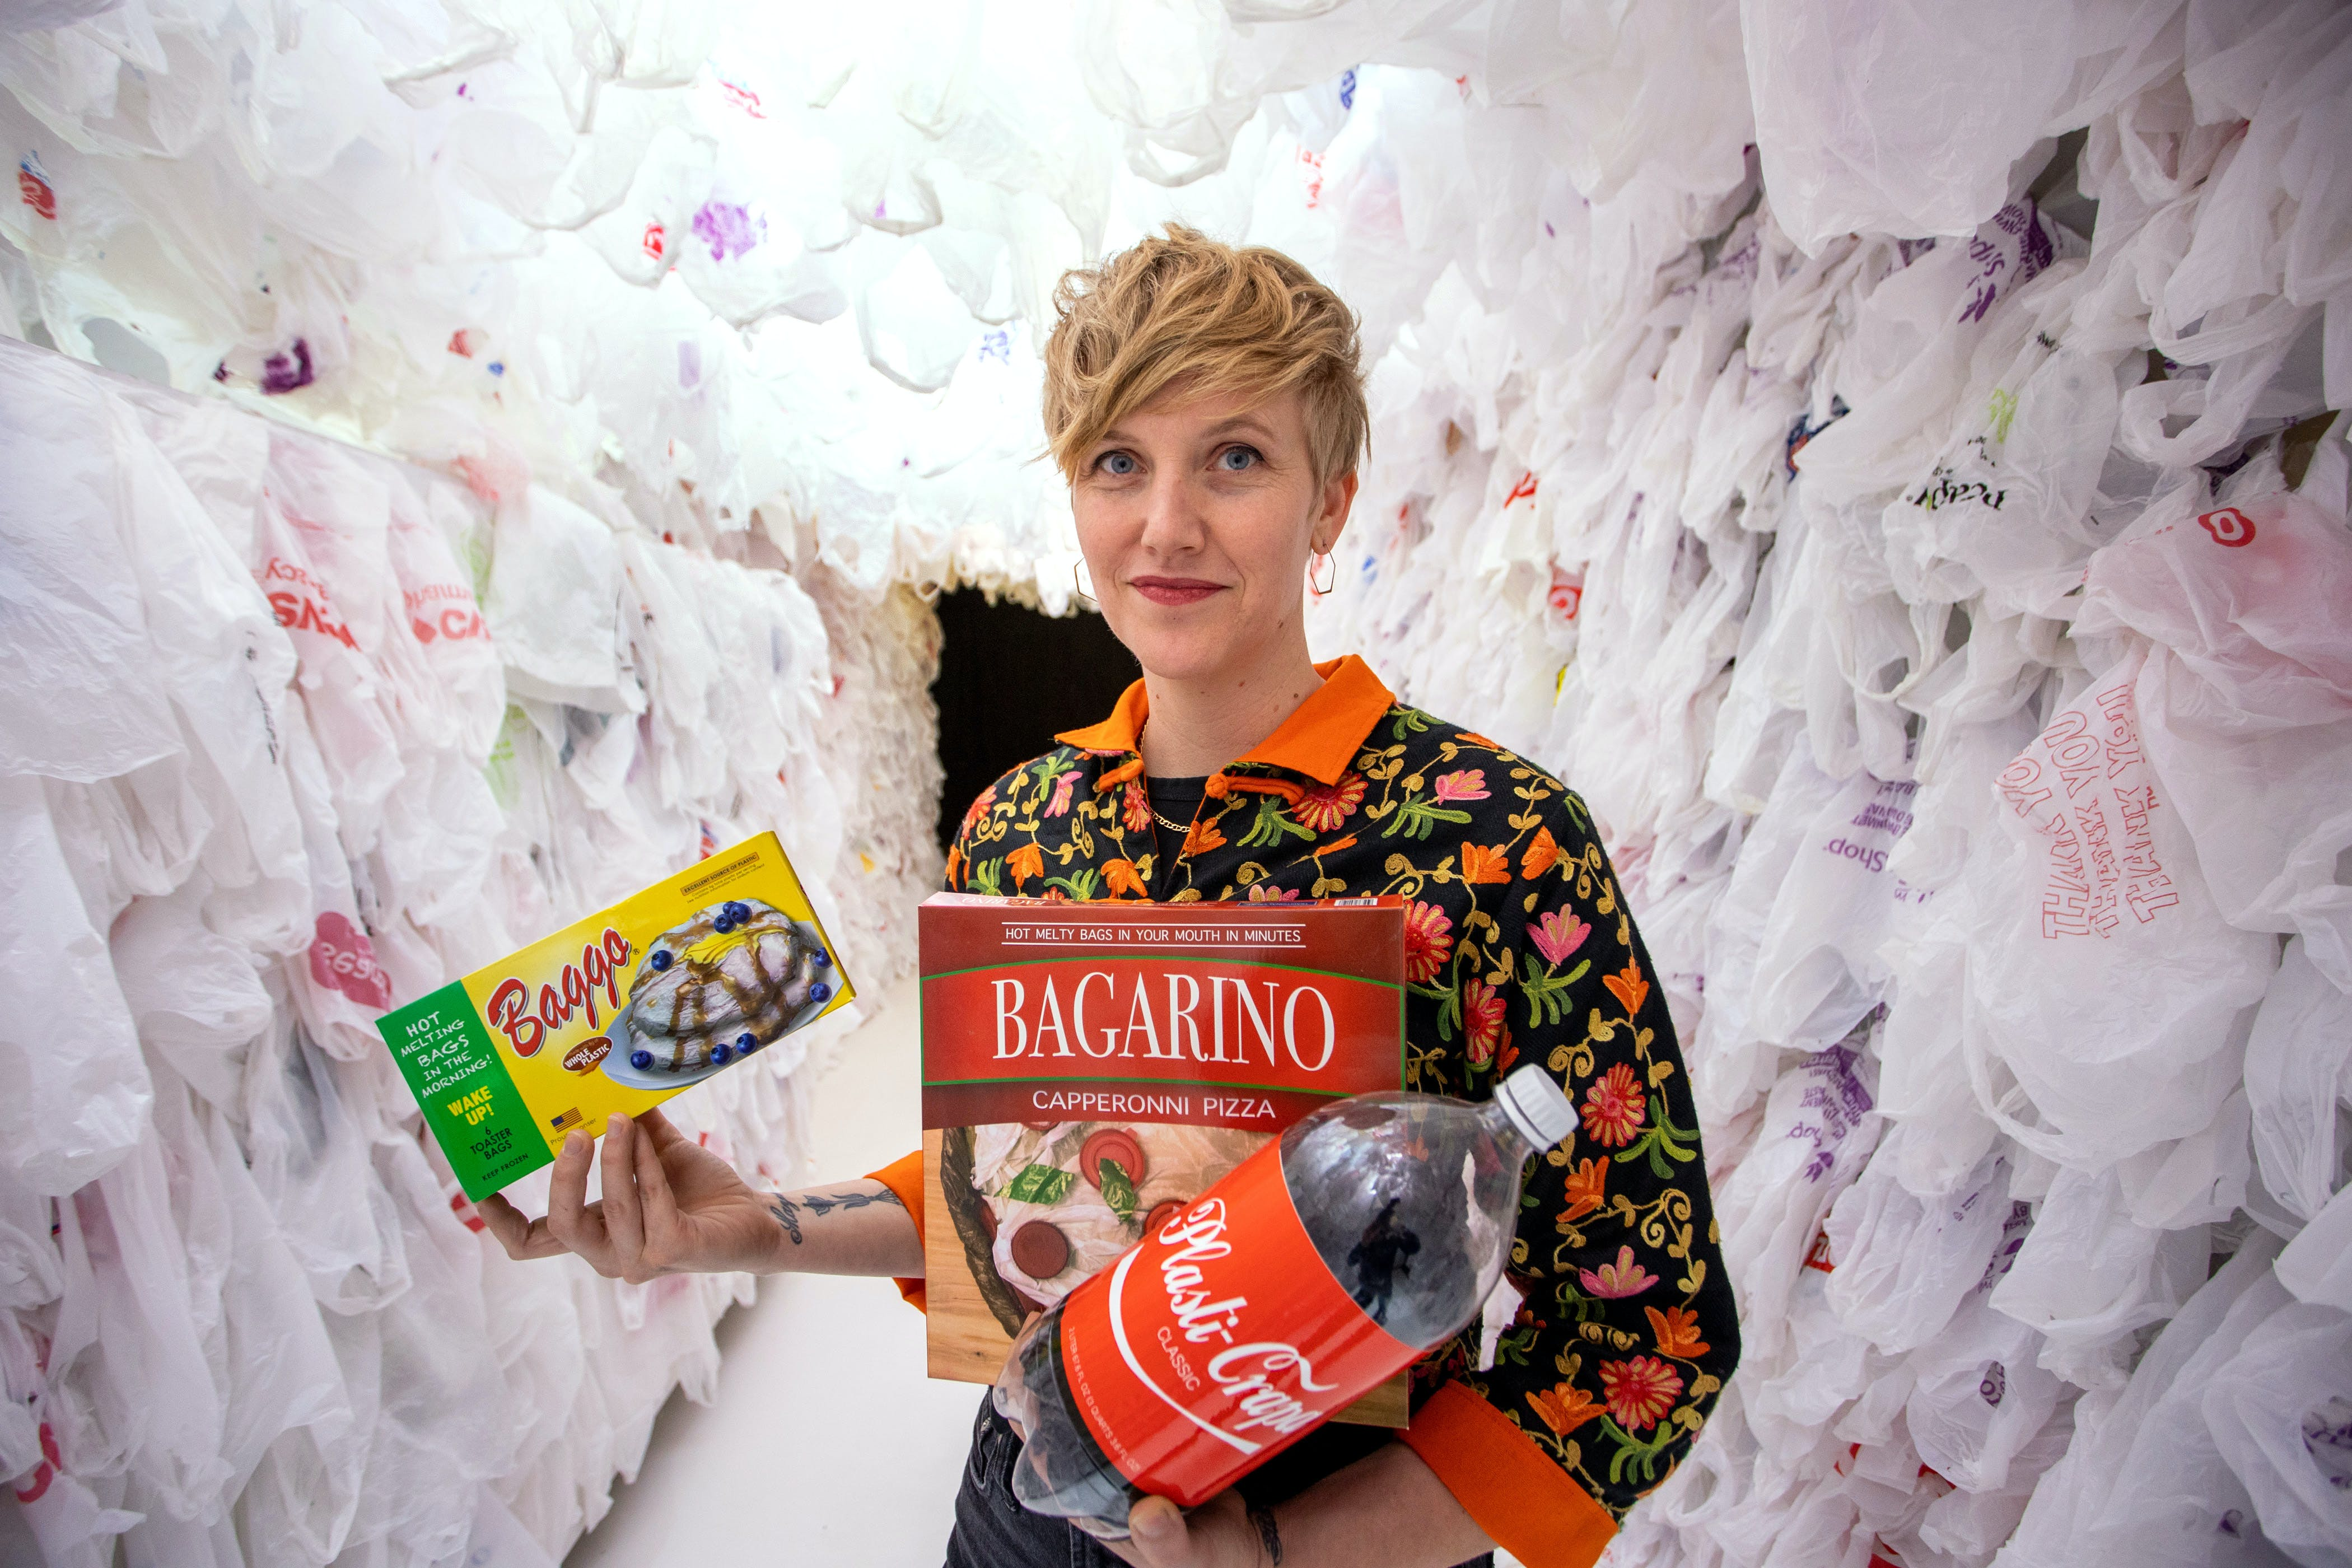 A woman with short blonde hairs stands in a room lined with plastic bags, while holding fake products sold in the Plastic Bag Store.